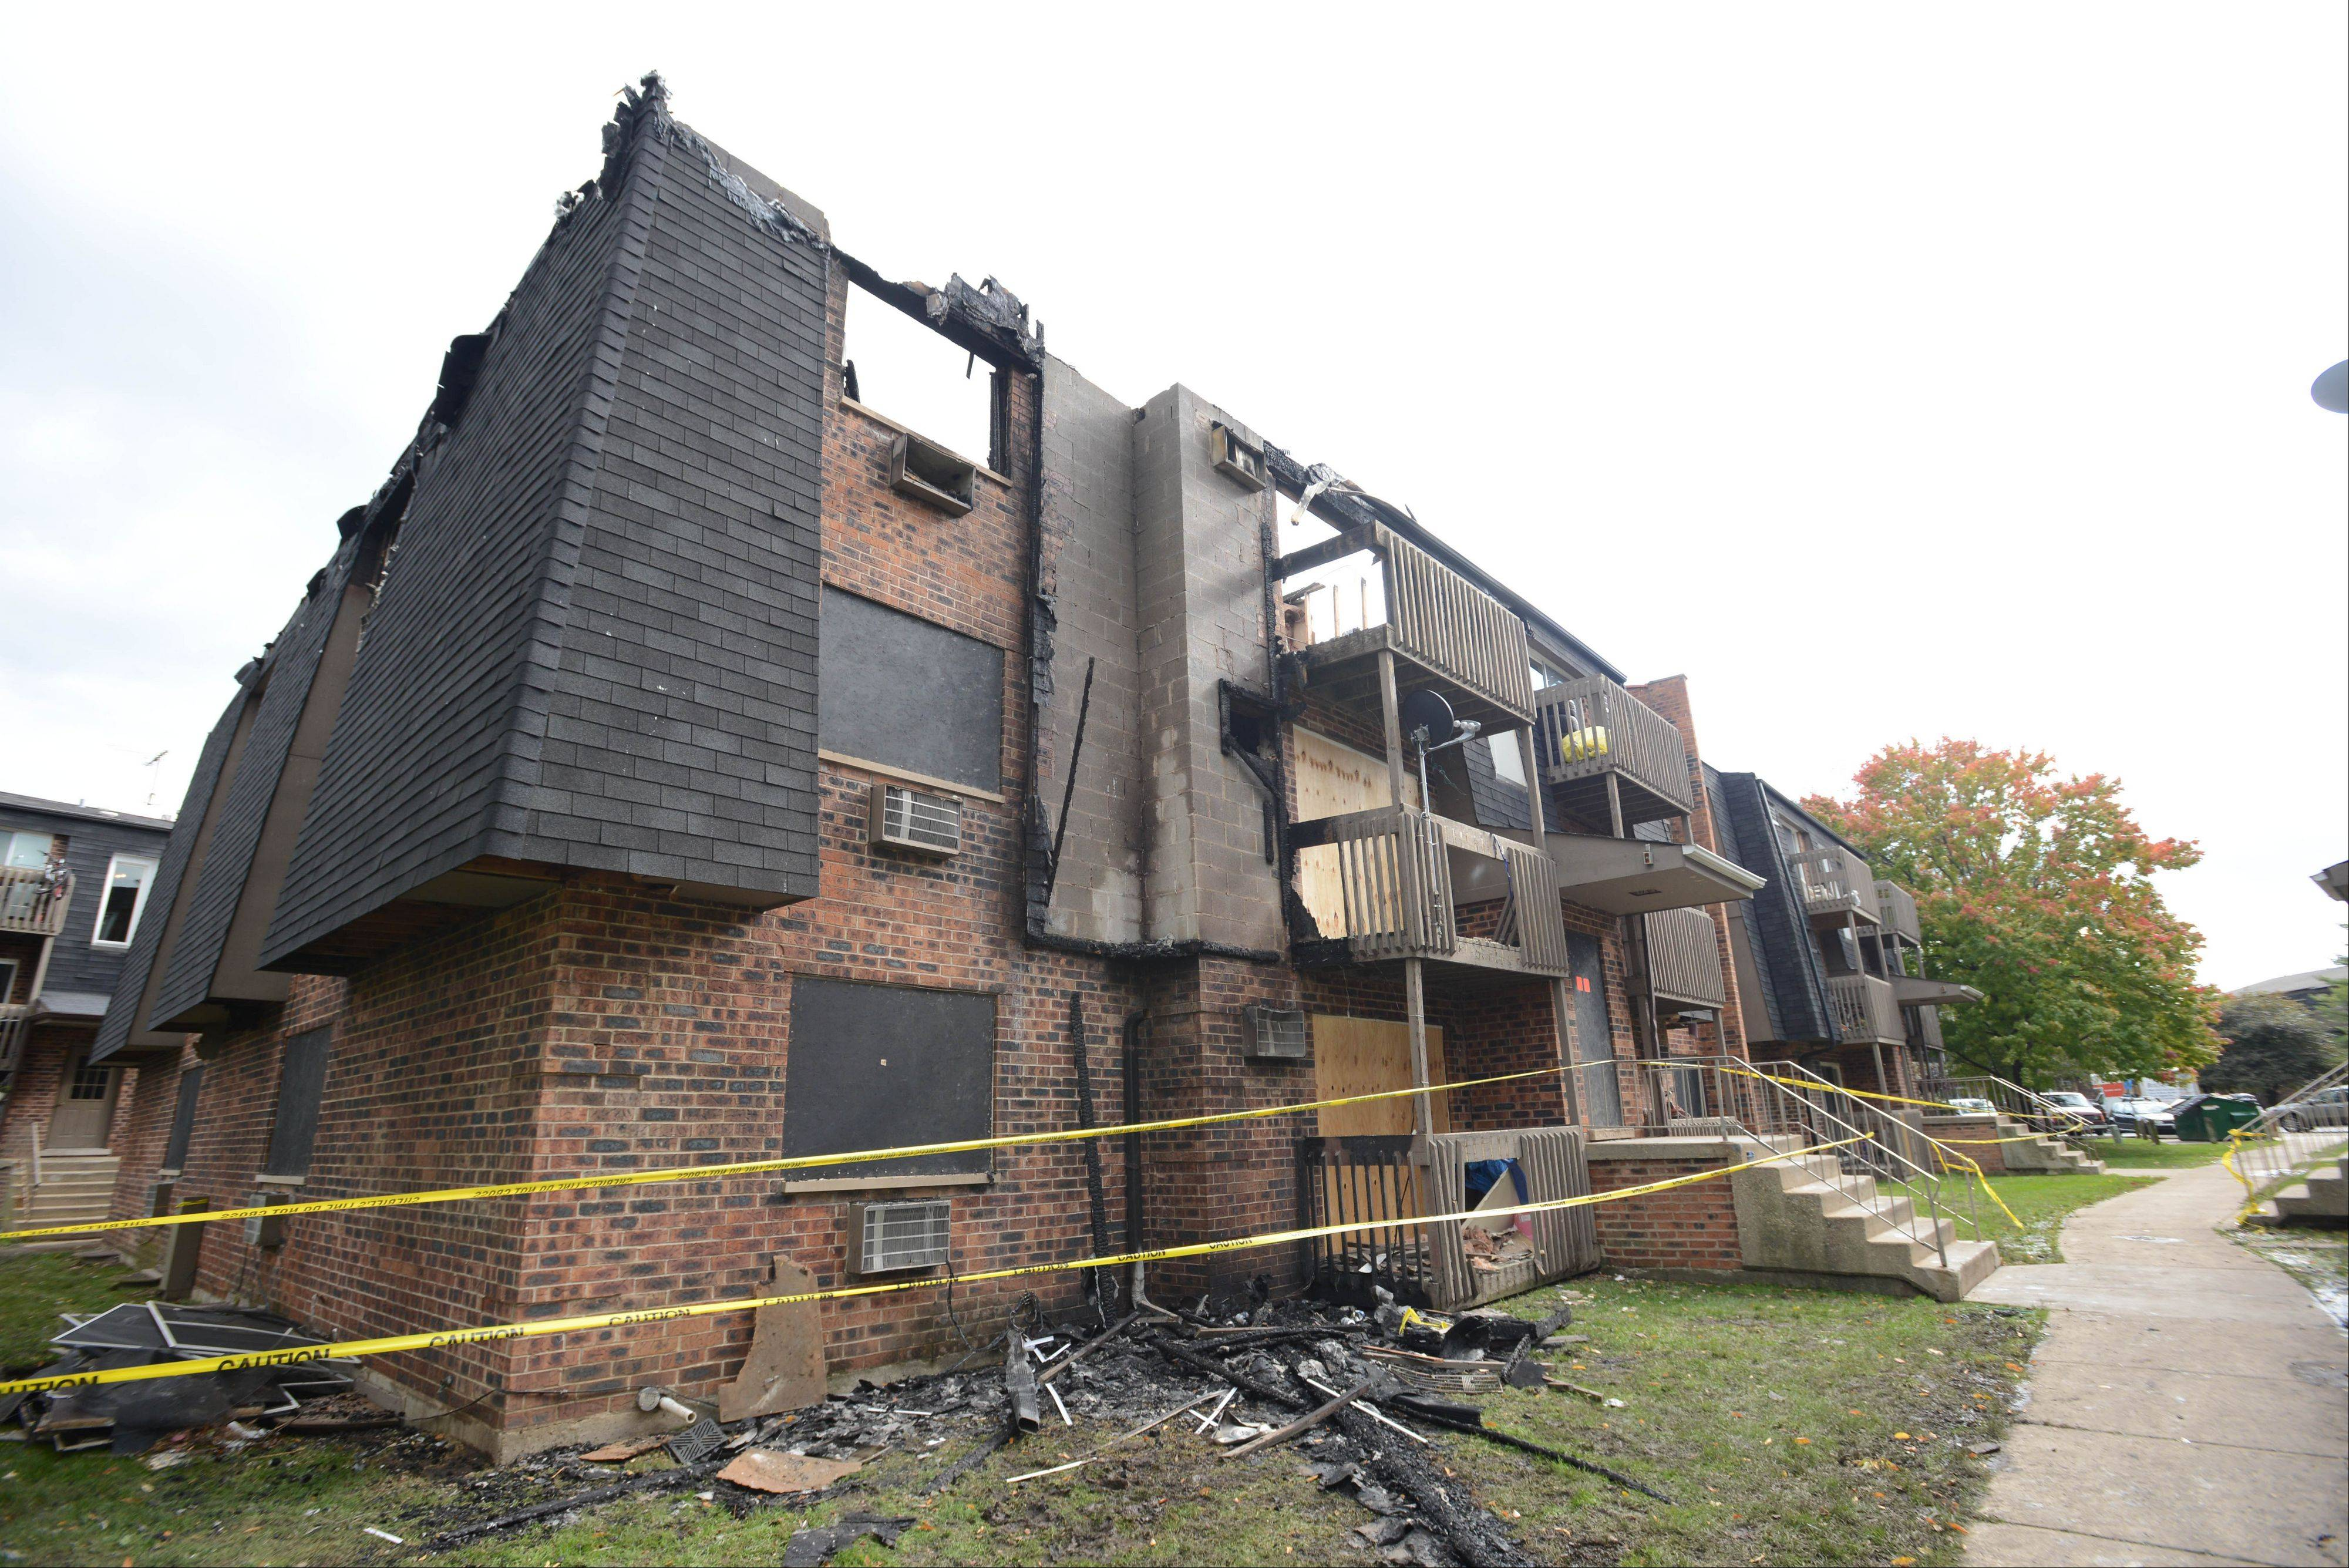 Investigators still are looking into what sparked a weekend fire that displaced two dozen families at Willow Lakes Apartments between Lombard and Glen Ellyn.